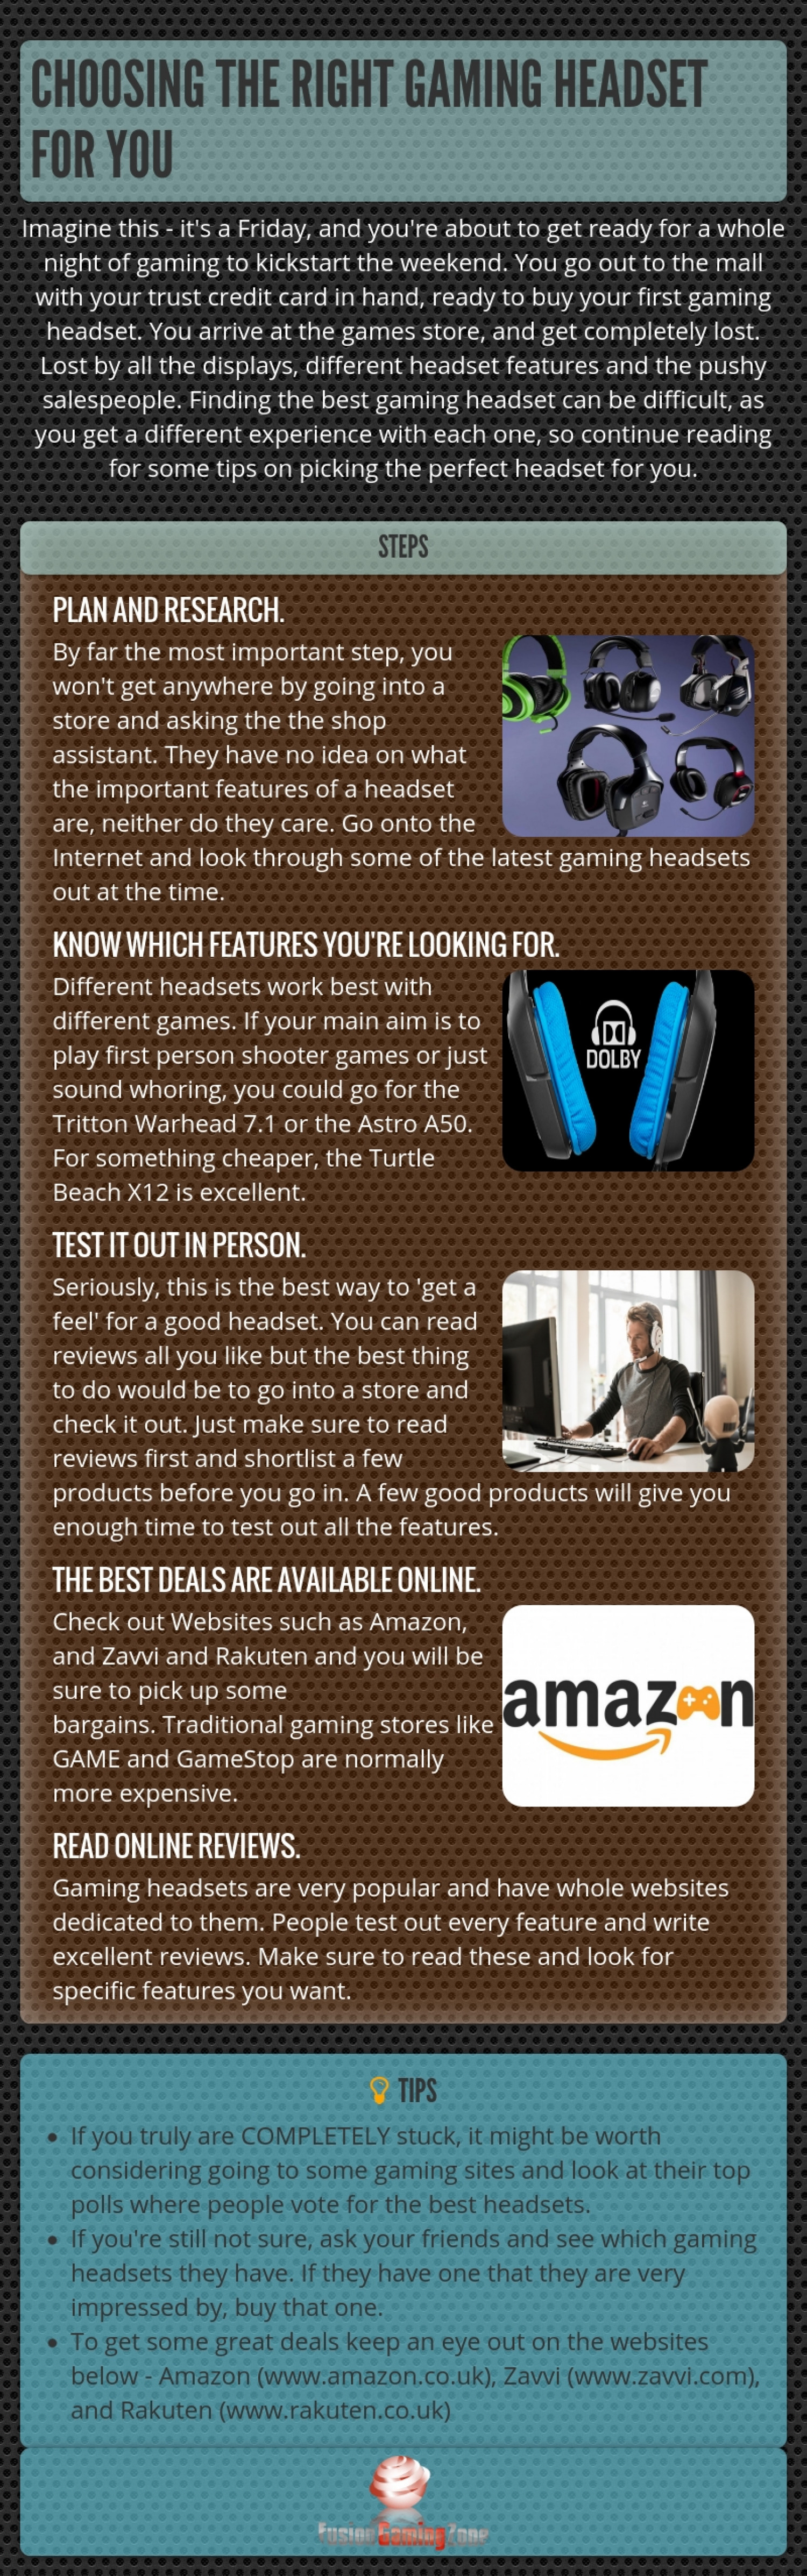 Advice on Choosing the Right Gaming Headset Infographic